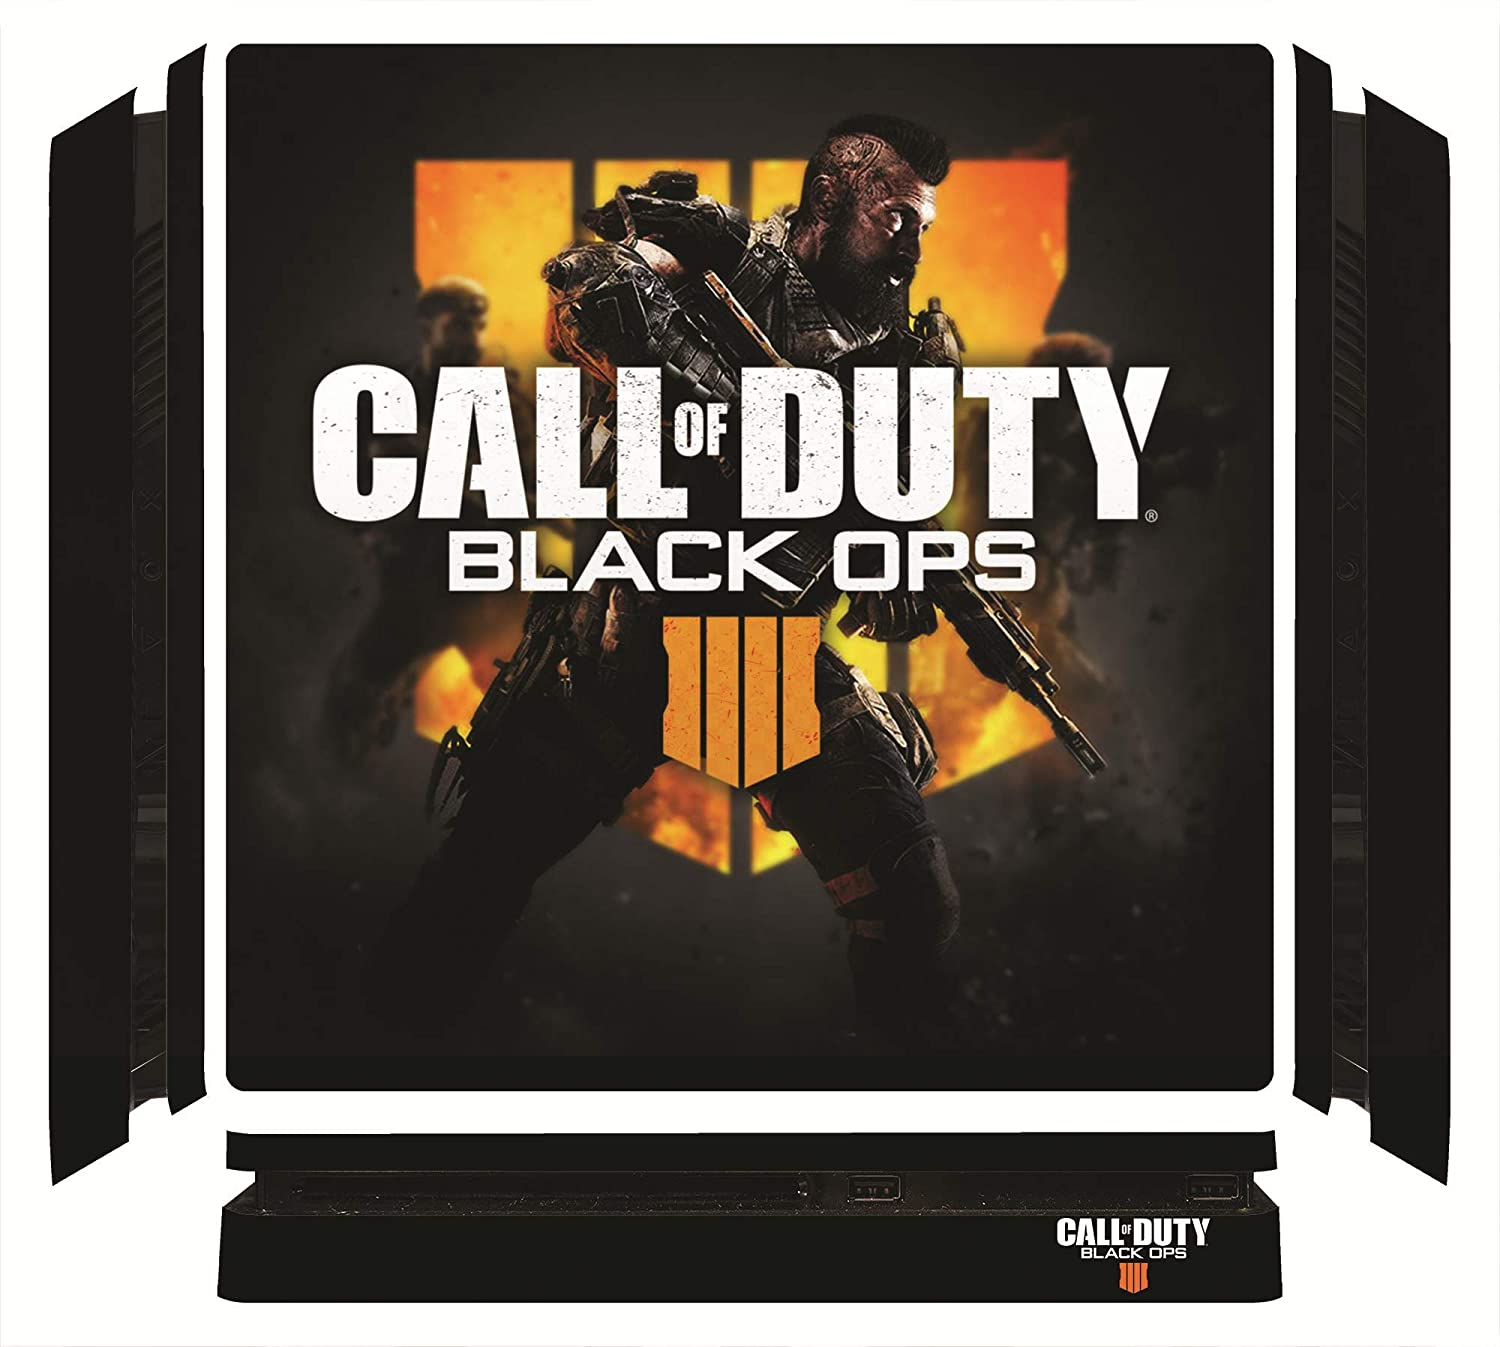 Call of Duty: Black Ops 4 IV BOPS4 BLOPS4 Game Skin for Sony Playstation 4 Slim - PS4 Slim Console - 100% Satisfaction Guarantee!